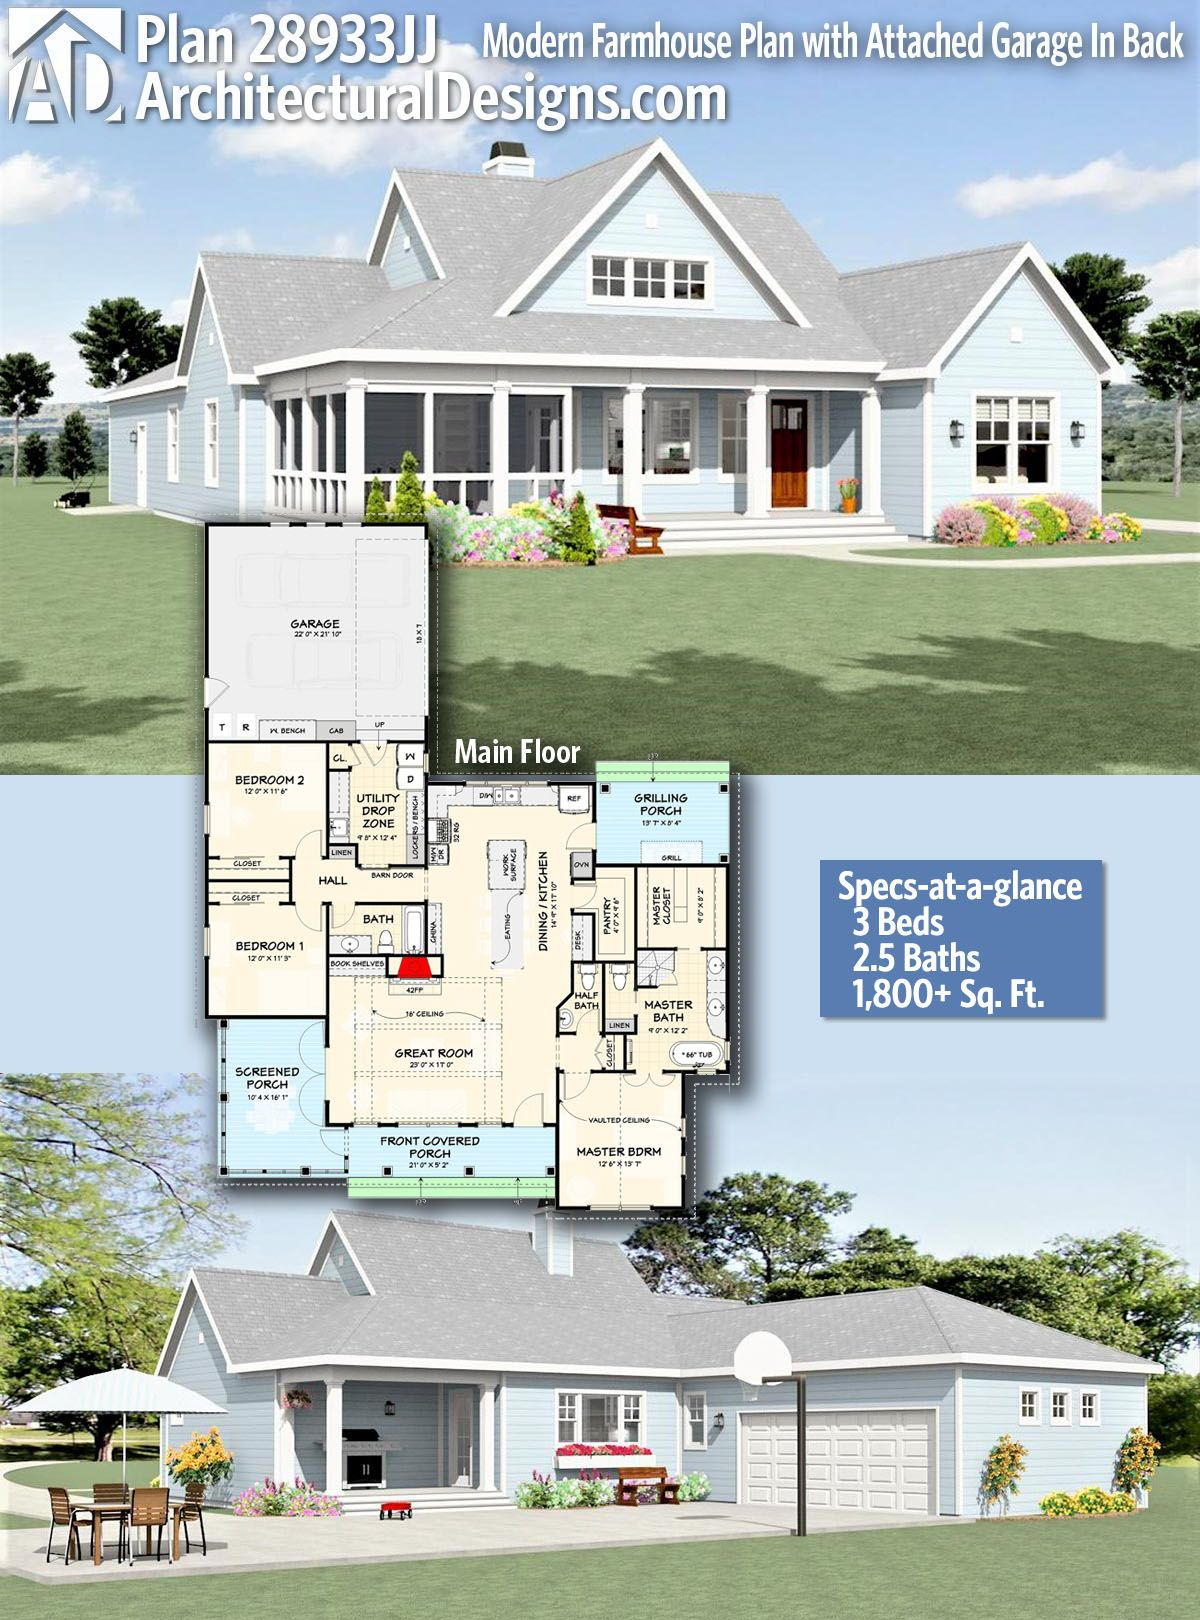 1800s Country Homes: Plan 28933JJ: Modern Farmhouse Plan With Attached Garage